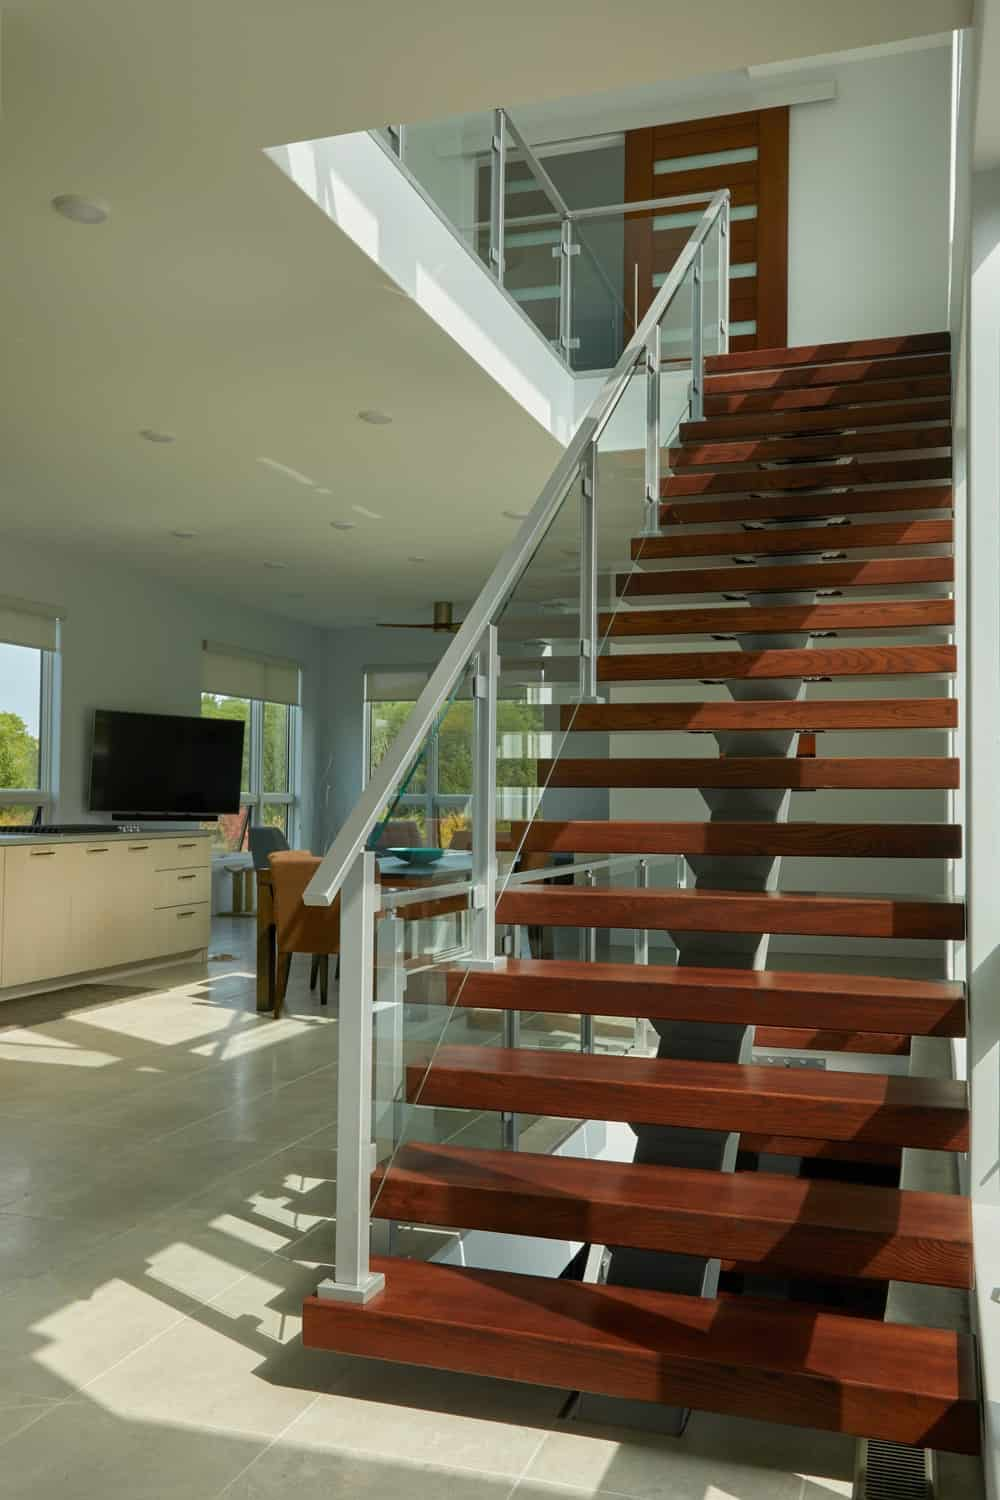 The glass walls of the staircase also gives a full view of the kitchen and dining area on the far side.